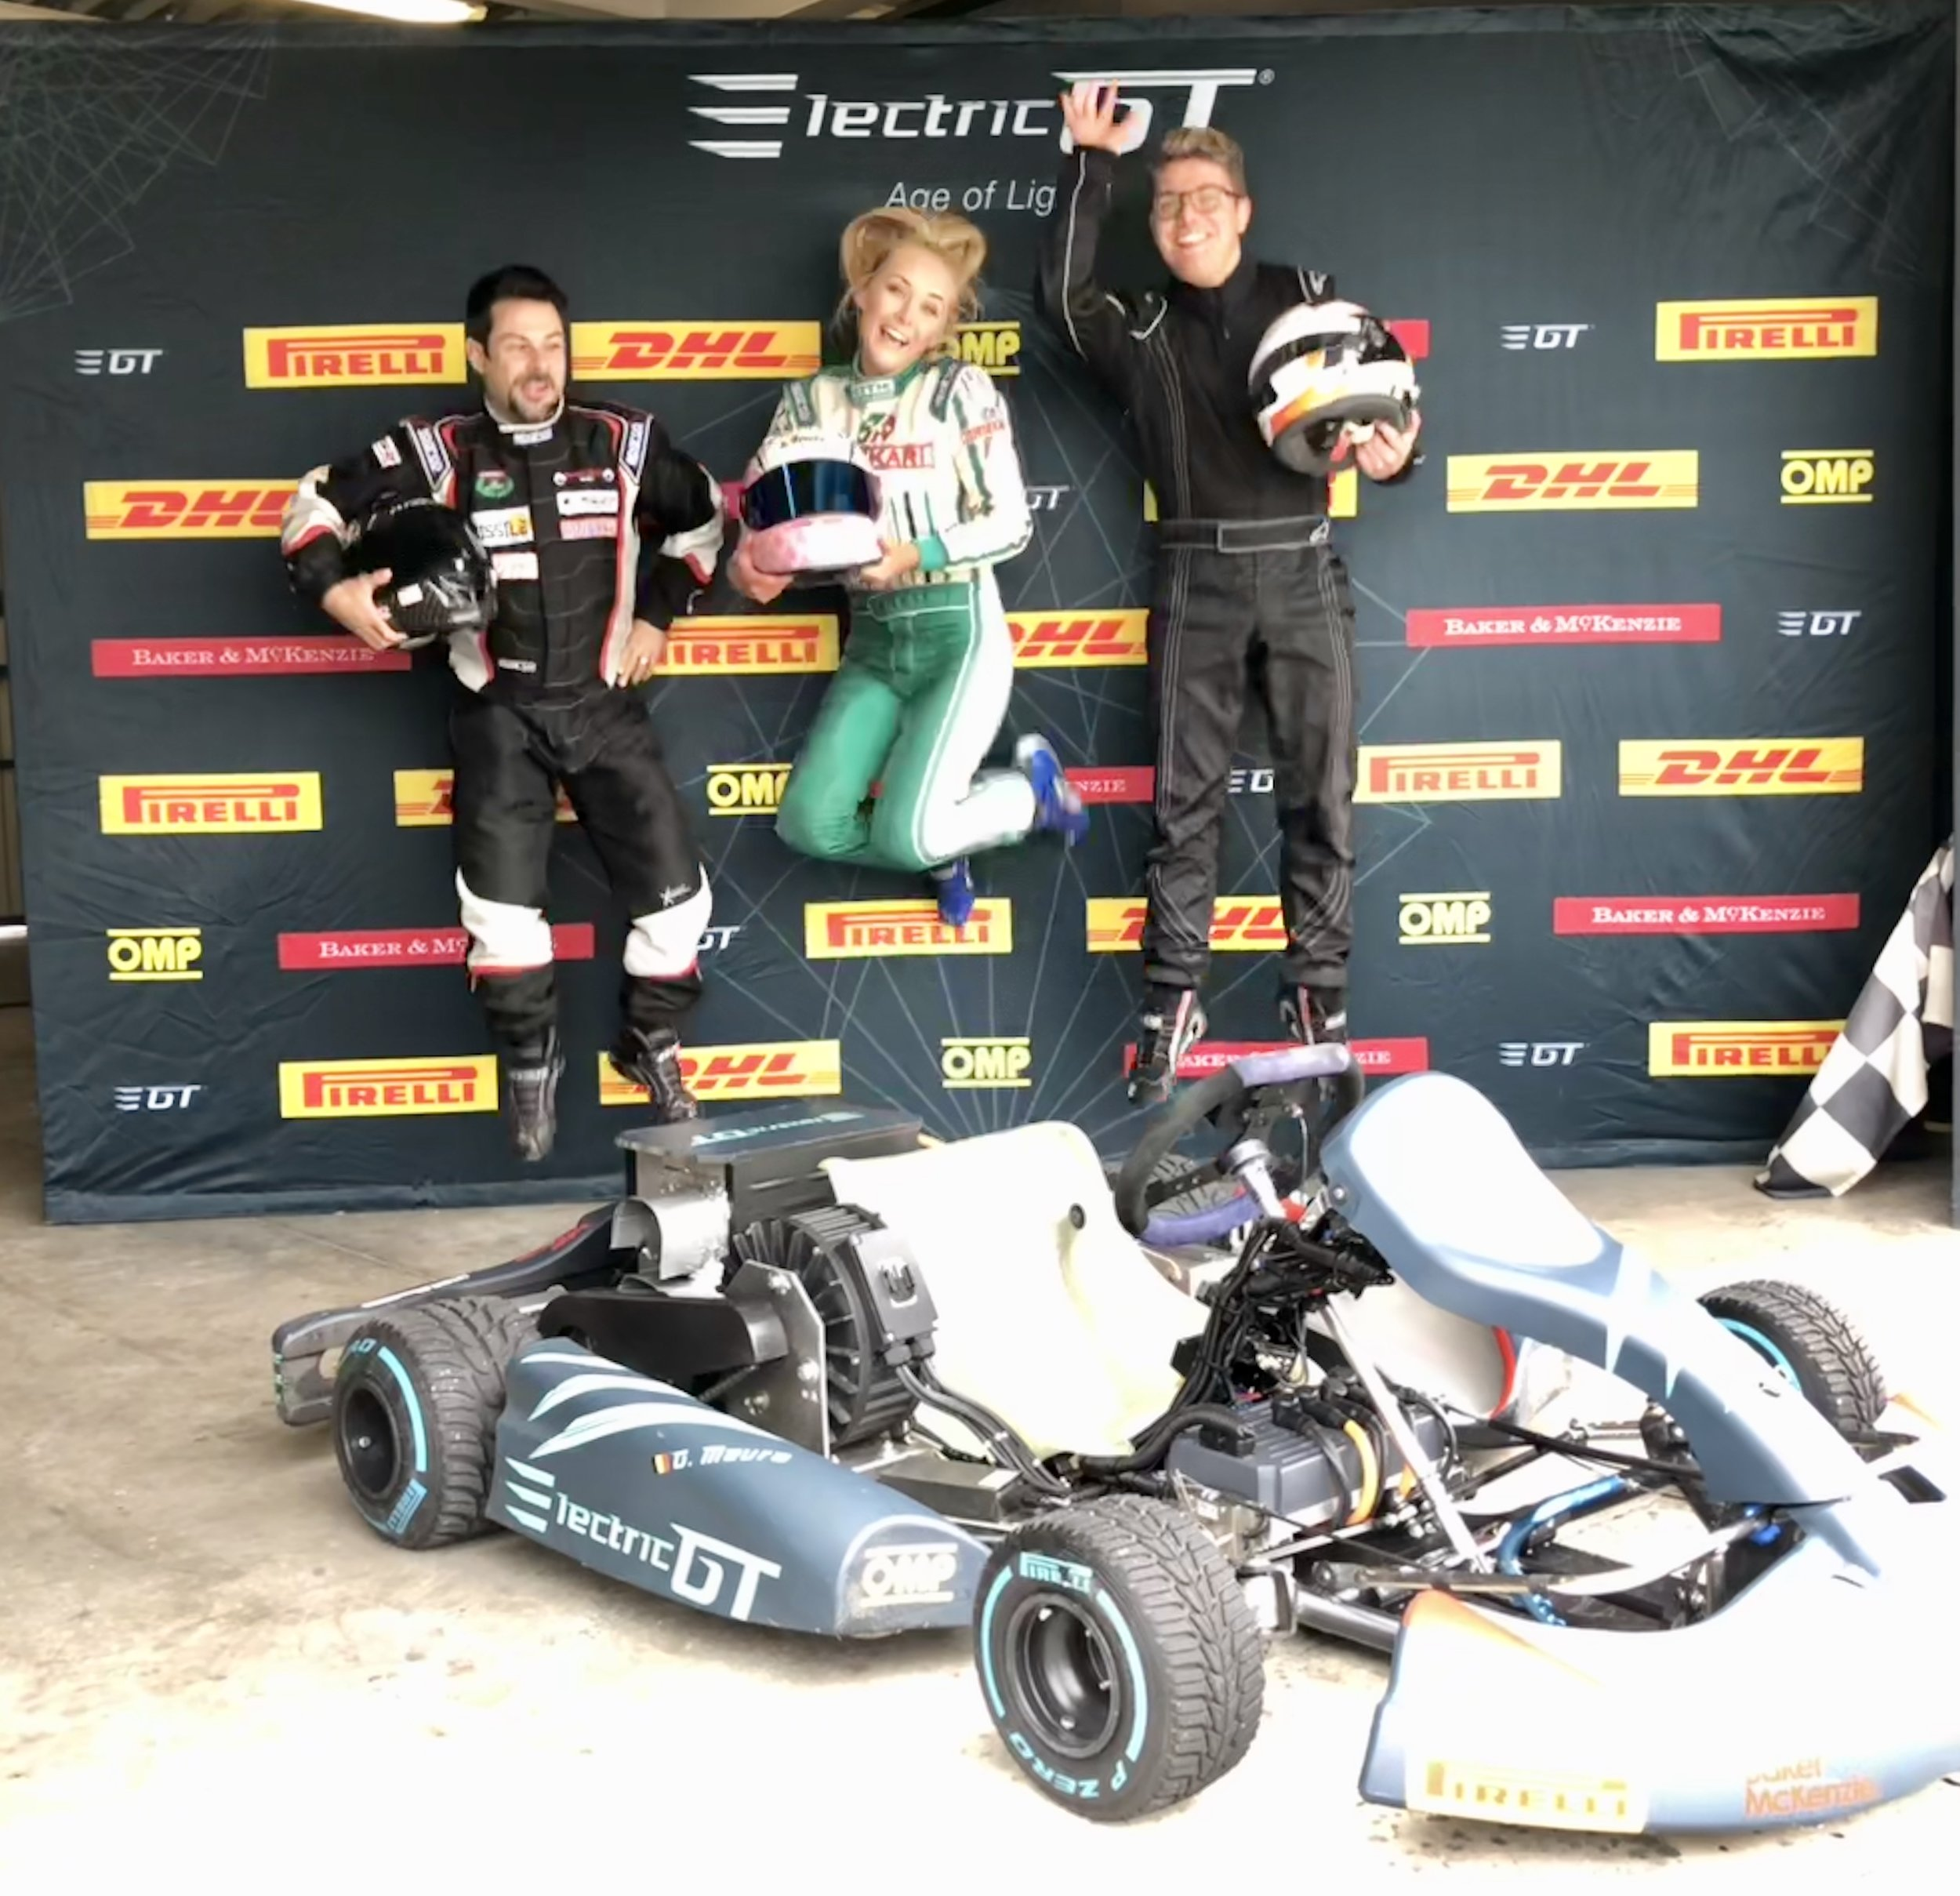 THE DRIVERS OF ELECTRIC GT HOLDINGS COMPLETE    SECOND EKARTING TEST AT CIK FIA CIRCUIT MOTORLAND   The test was completed by Aoife Melia (Ireland) and Tom Turschwel (France) from the eKarting Drivers' Club  Read More